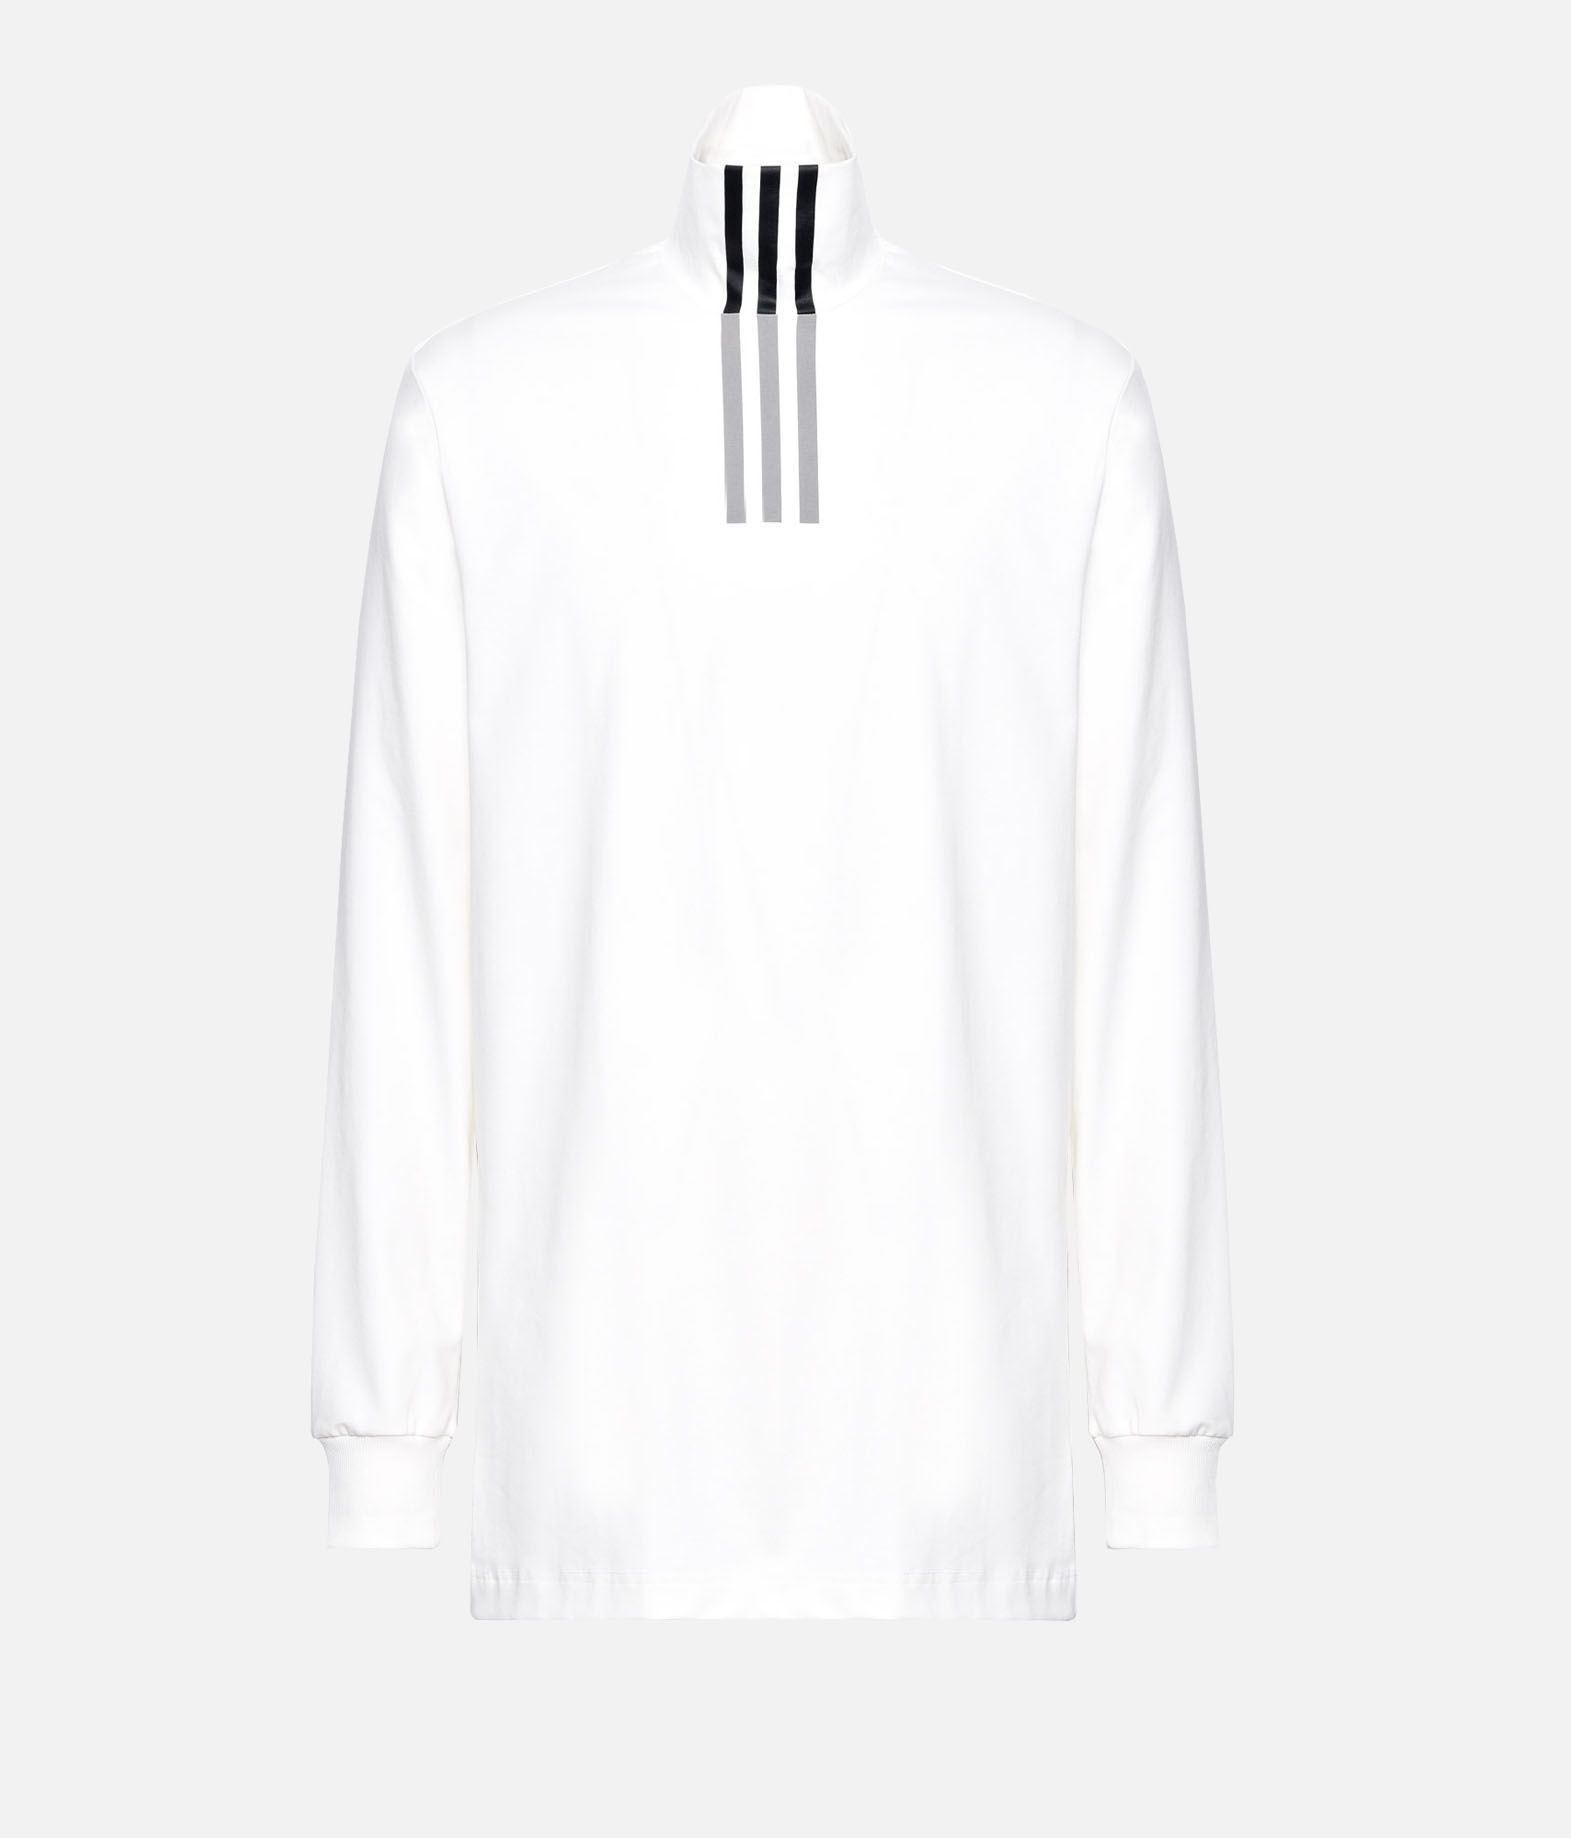 cb4913f1c5260 ... Y-3 Y-3 3-Stripes High Neck Tee Long sleeve t- ...